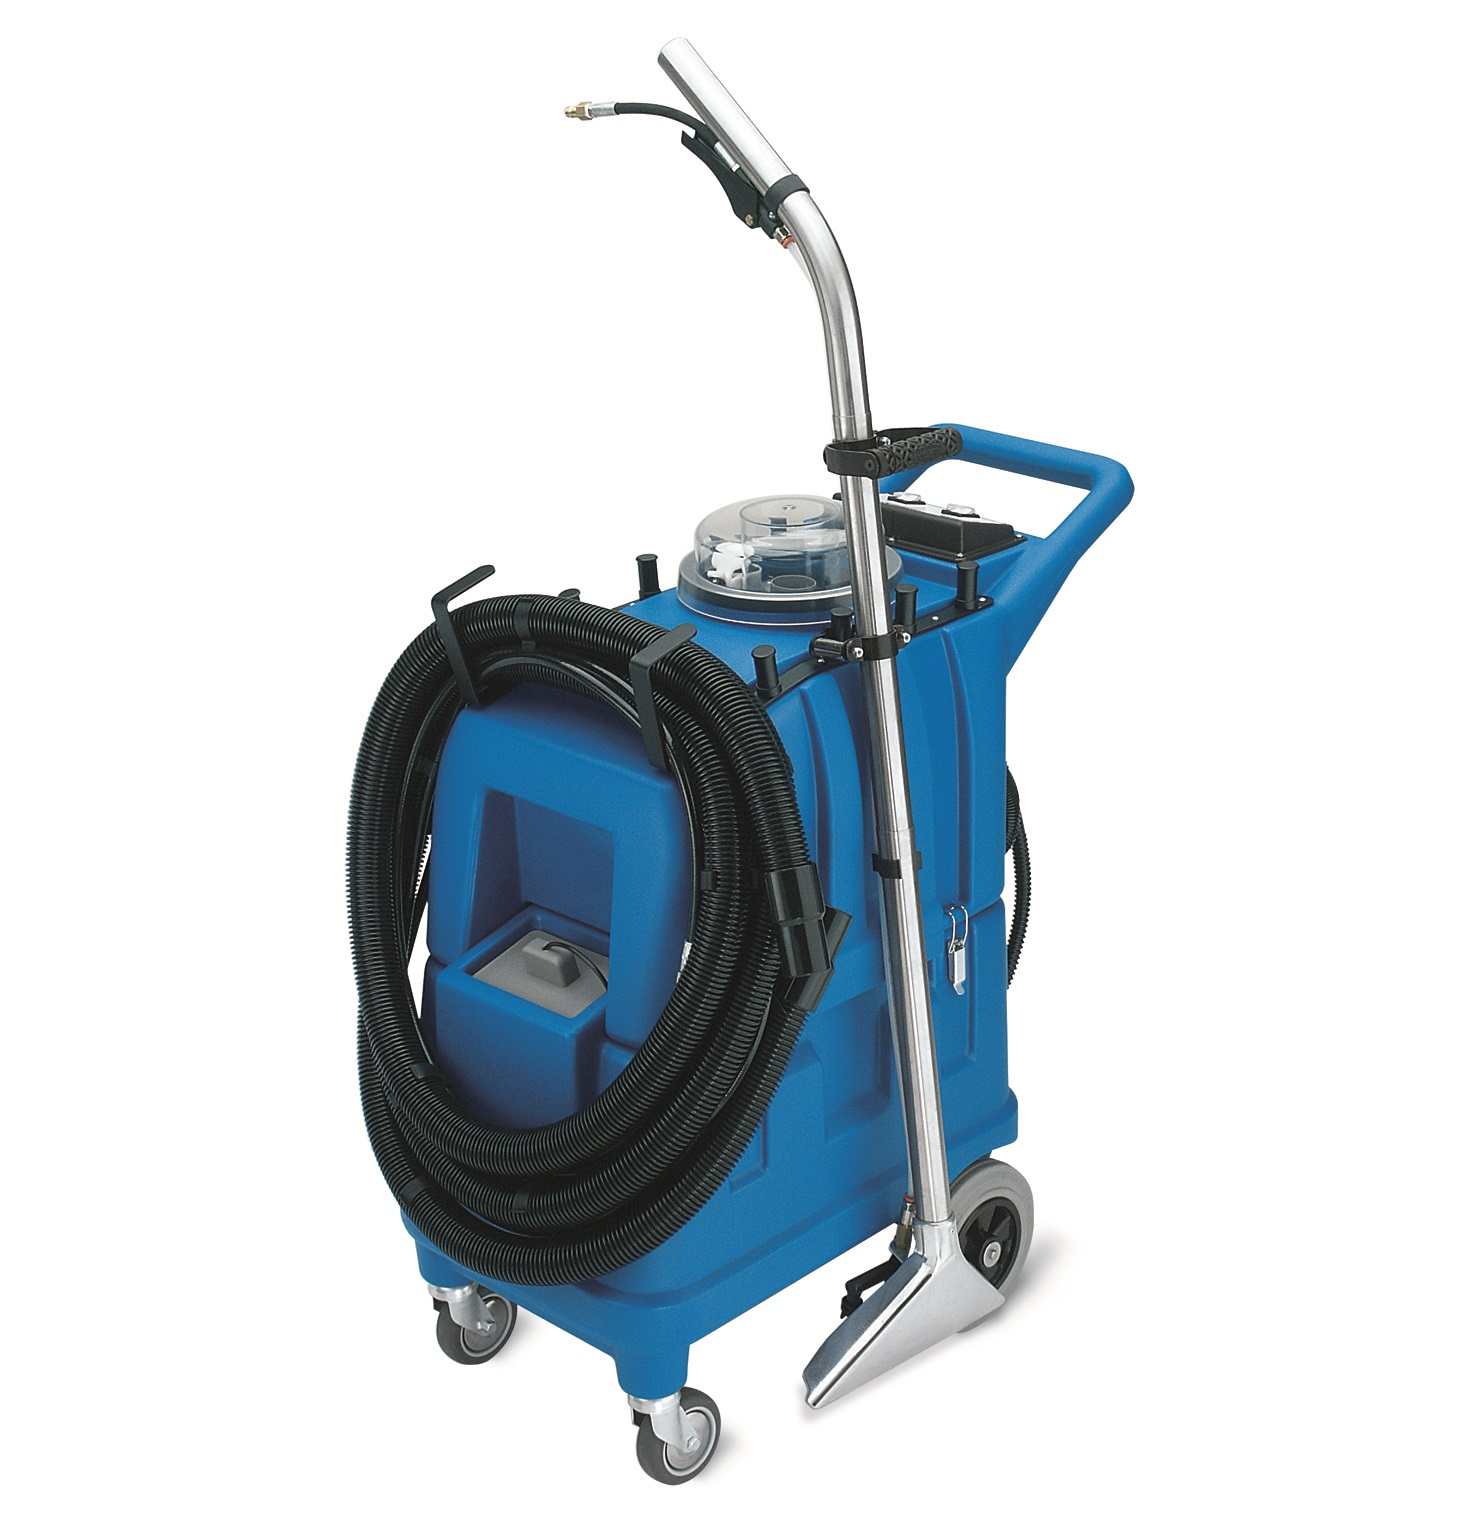 Serena-Silent-5030-50ltr---extraction-machine--wand--hose--handtool